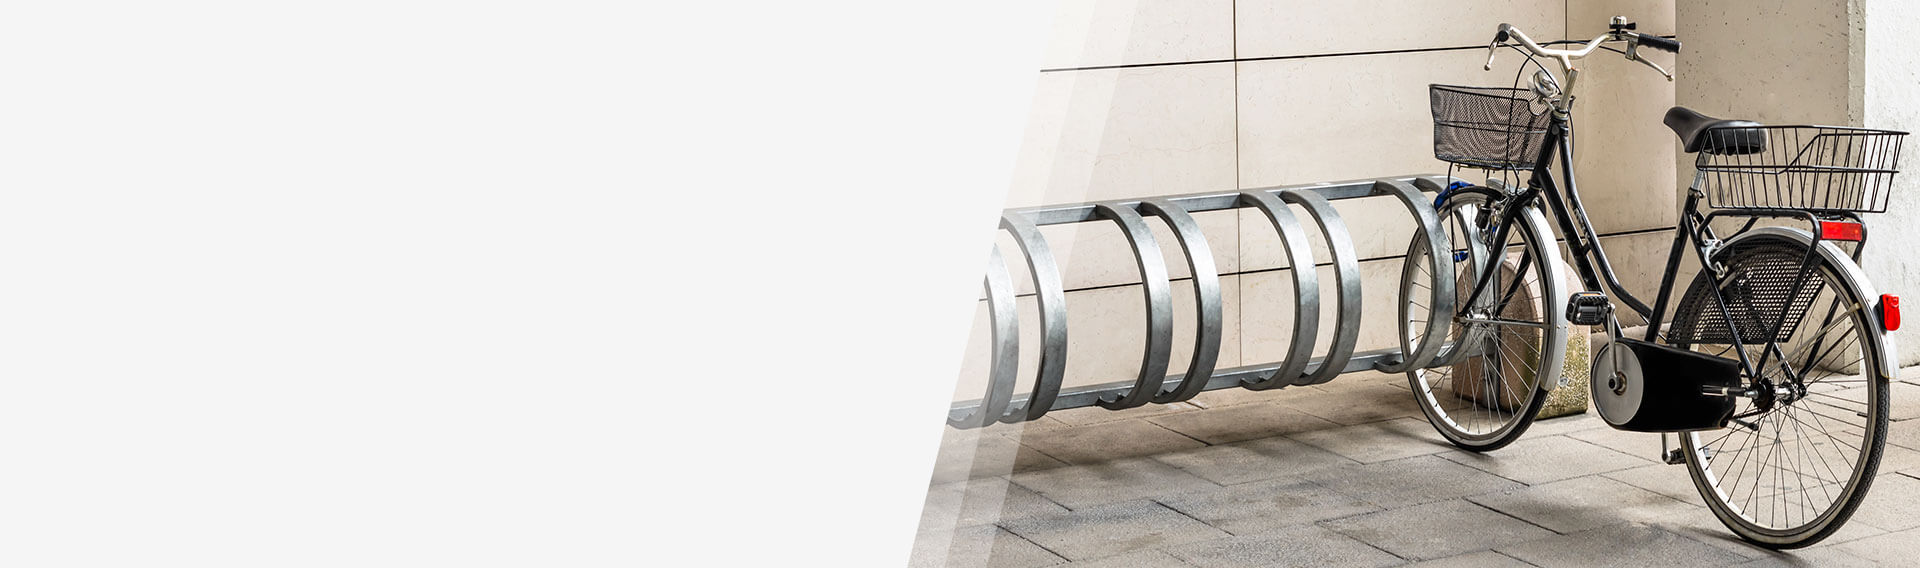 Specialist Street furniture suppliers